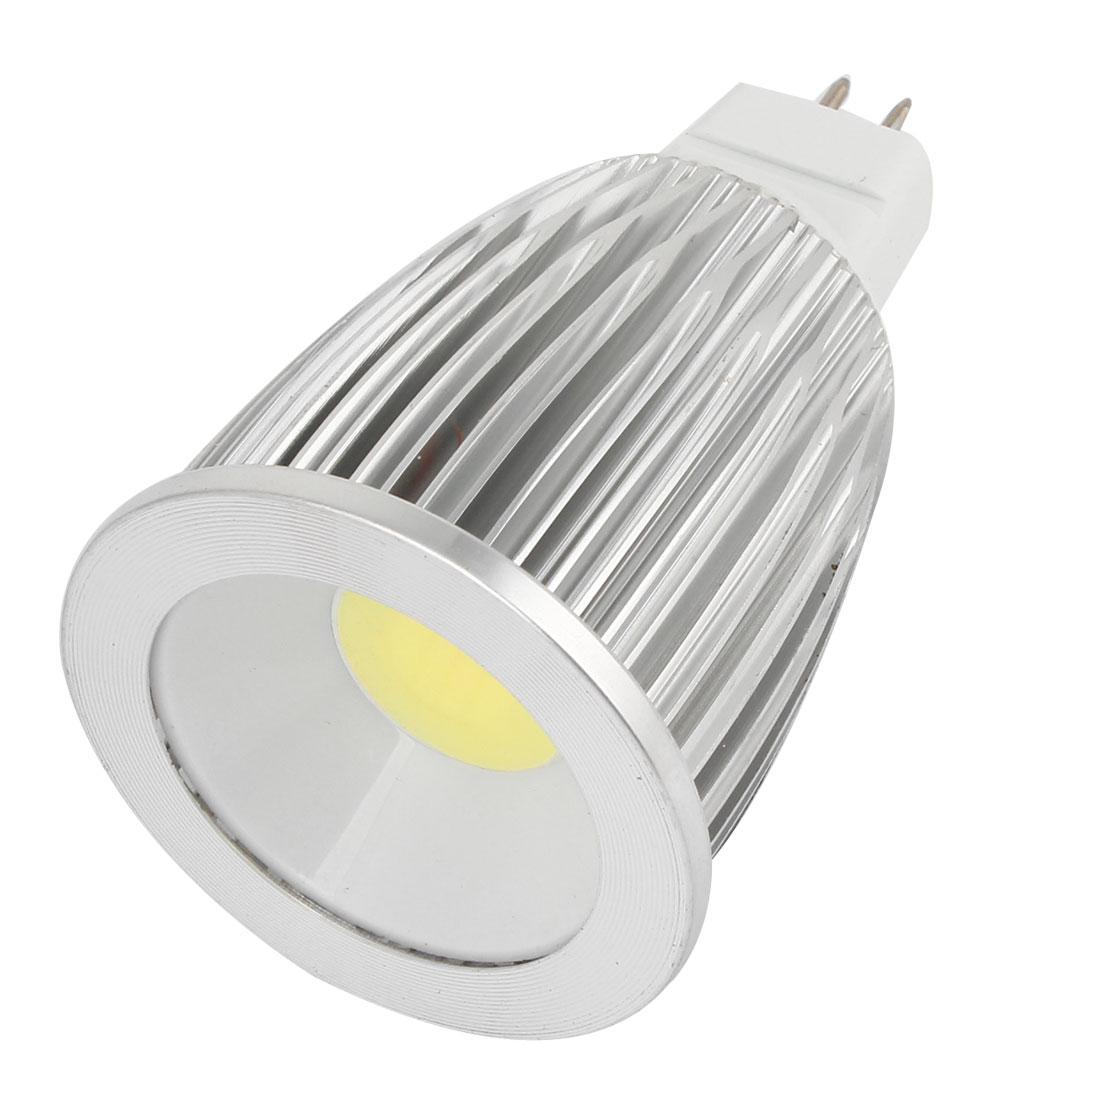 AC 12V 12W MR16 Dimmable Cool White Light COB LED Downlight Spotlight Lamp